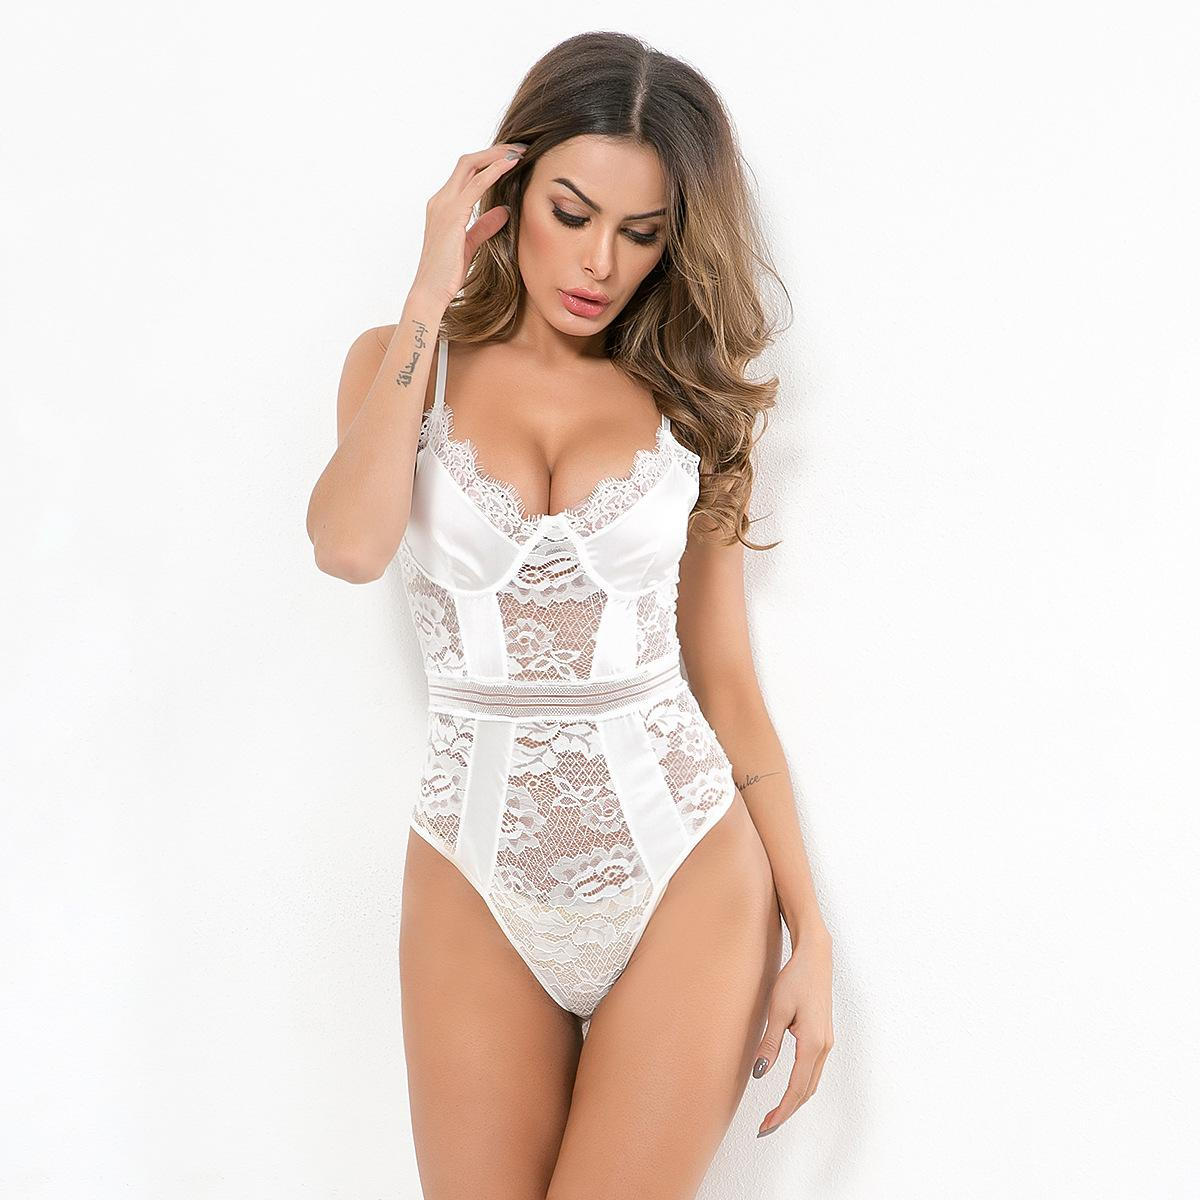 2020 New Women'S Bottoming One-Piece Lace Top, Sexy Lingerie, Body Shaping B